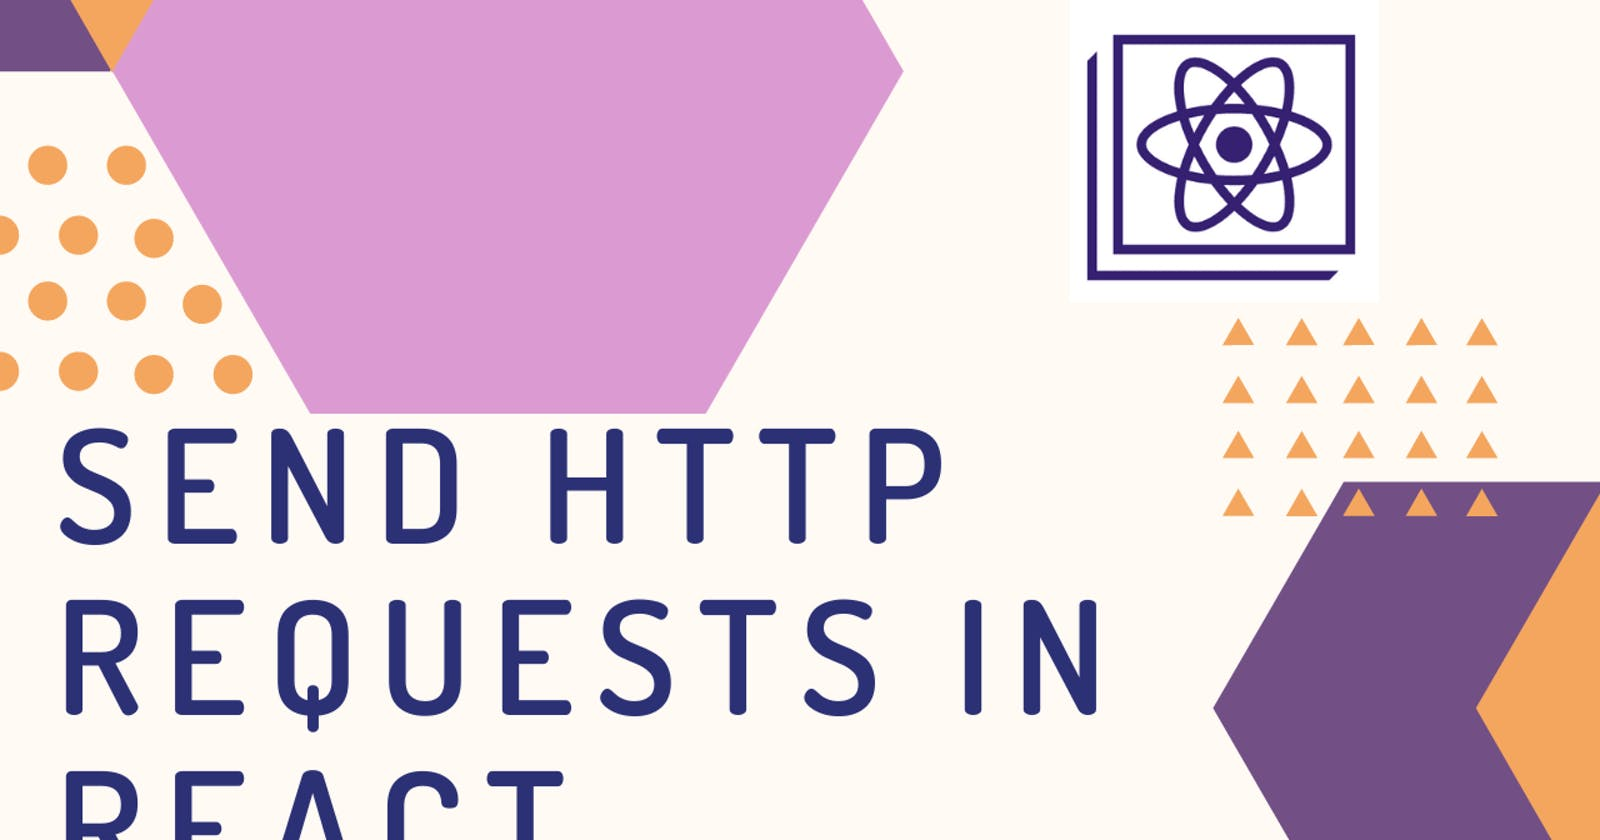 How to Send HTTP Requests in React